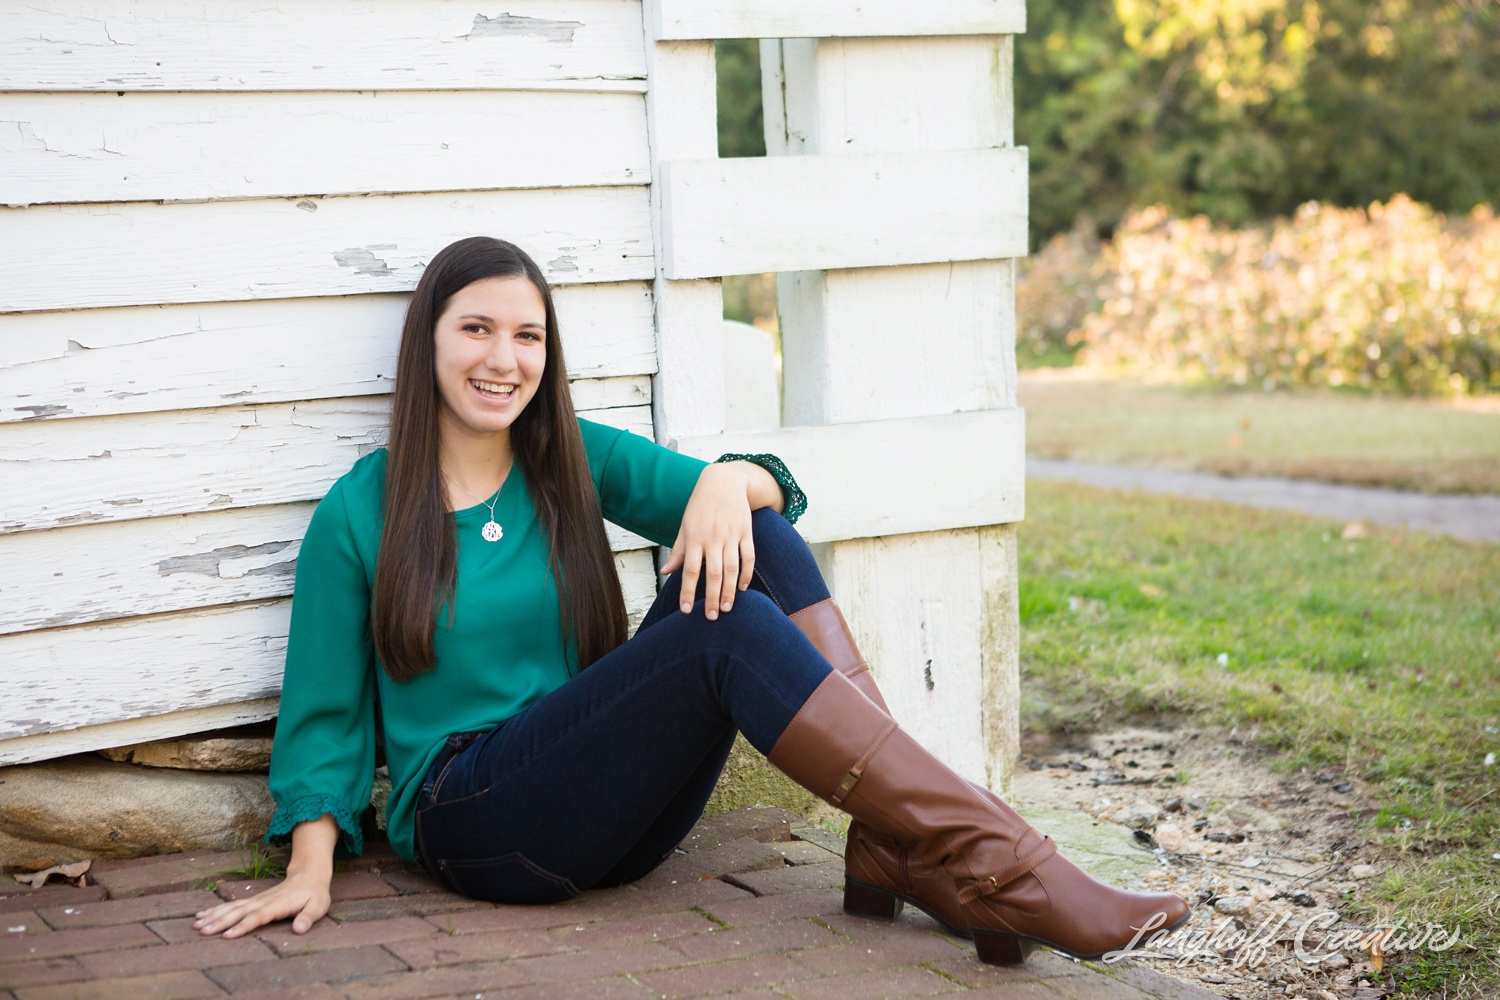 RaleighSeniorPortraits-SeniorSession-Classof2015-Senior2015-HighSchoolSeniorPhotography-LanghoffCreative-Alexa13-photo.jpg